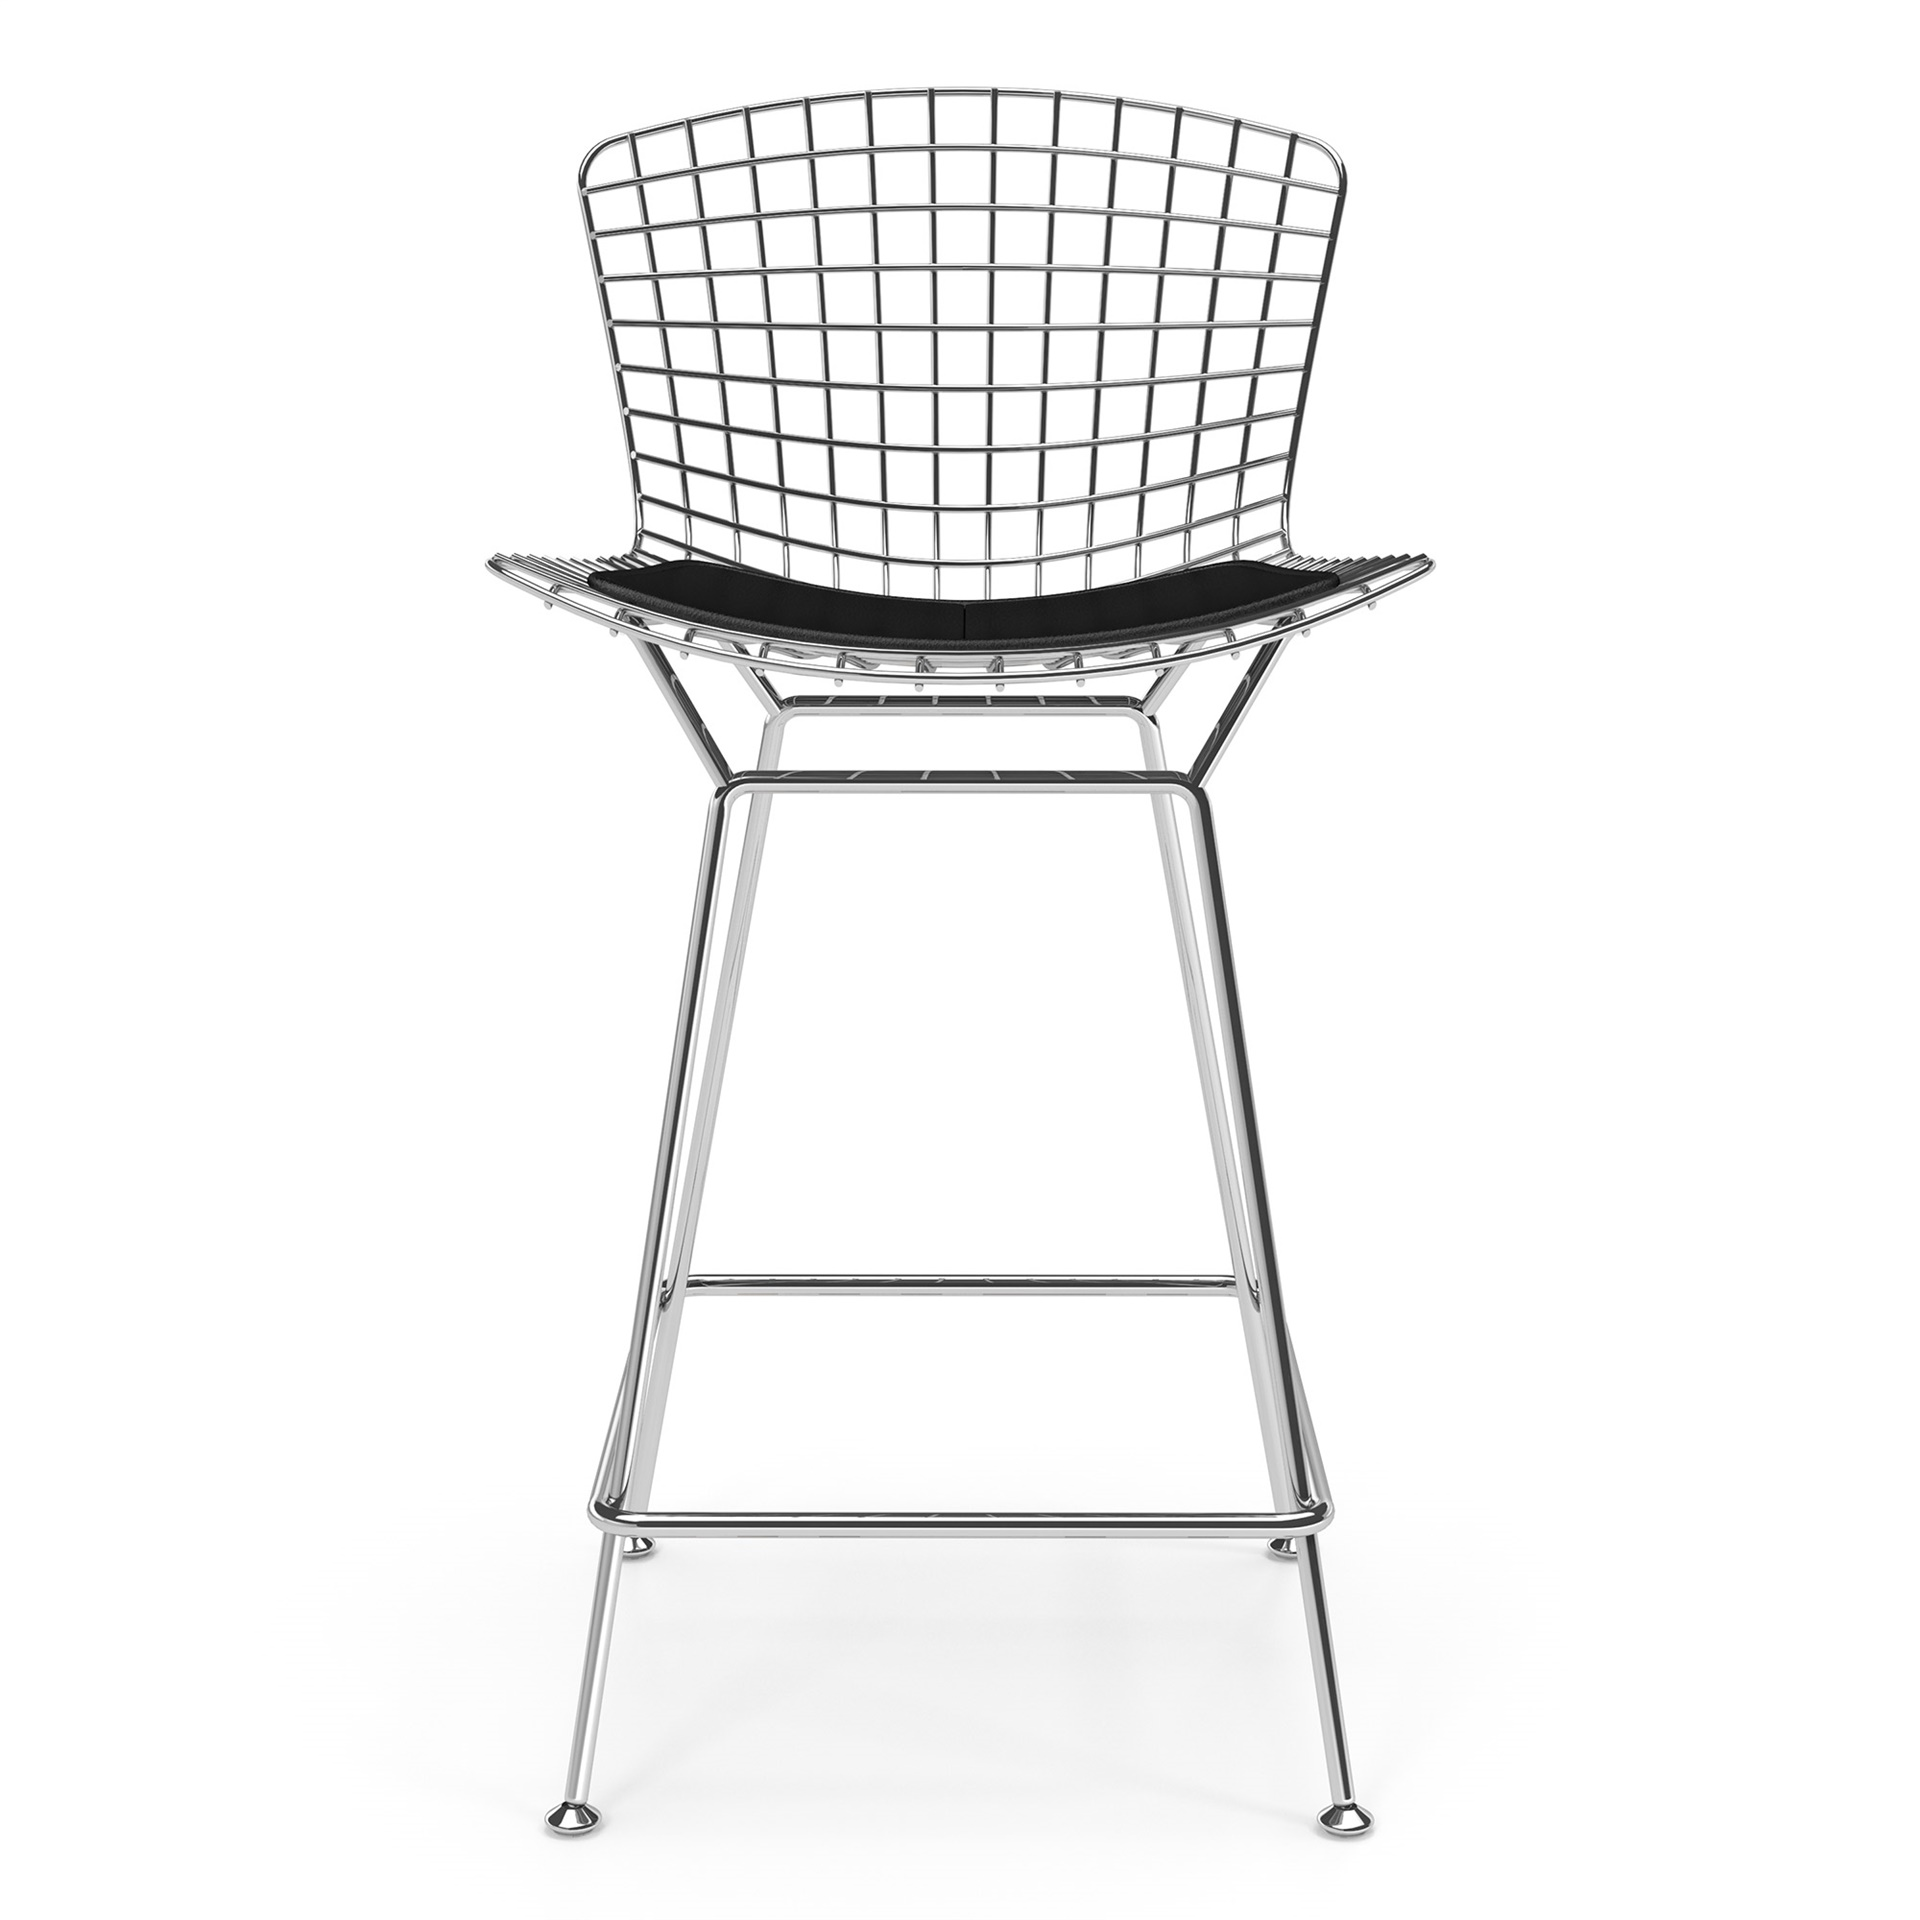 Phenomenal Bertoia Counter Stool Bralicious Painted Fabric Chair Ideas Braliciousco